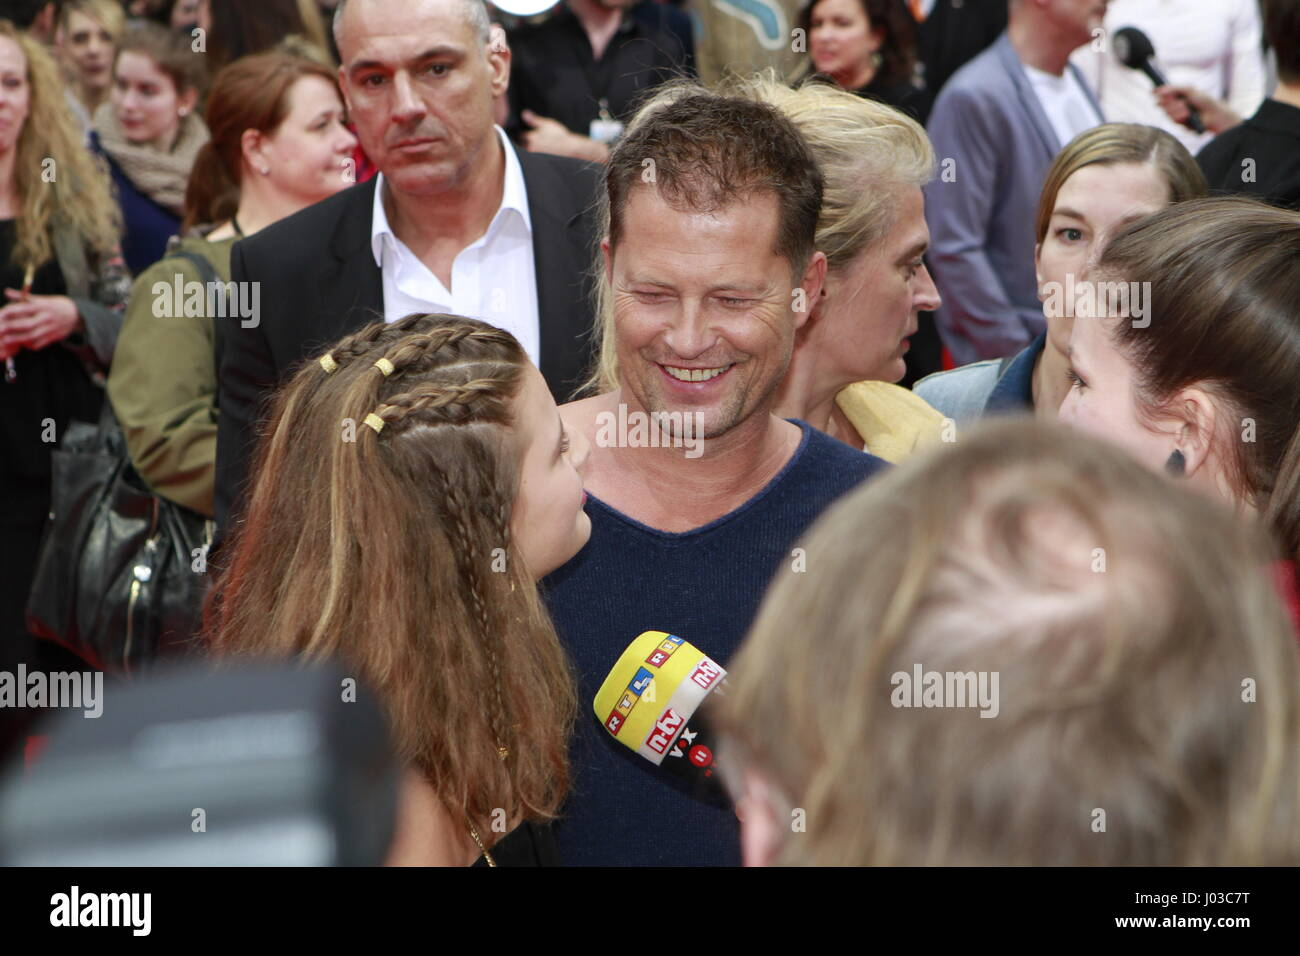 Berlin, Germany. 09th Apr, 2017. Actress Emma Schweiger and Actor Til Schweiger on the red carpet to the world premiere - Stock Image